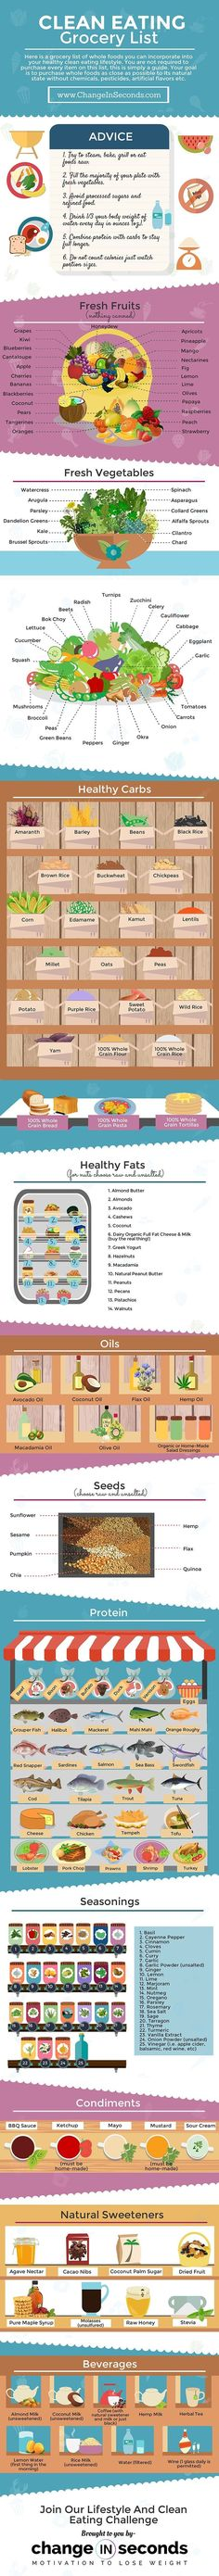 Here is a grocery list of whole foods you can incorporate into your healthy clean eating lifestyle. You are not required to purchase every item on this list, this is simply a guide. Your goal is to purchase whole foods as close as possible to its natural state without chemicals, pesticides, arti